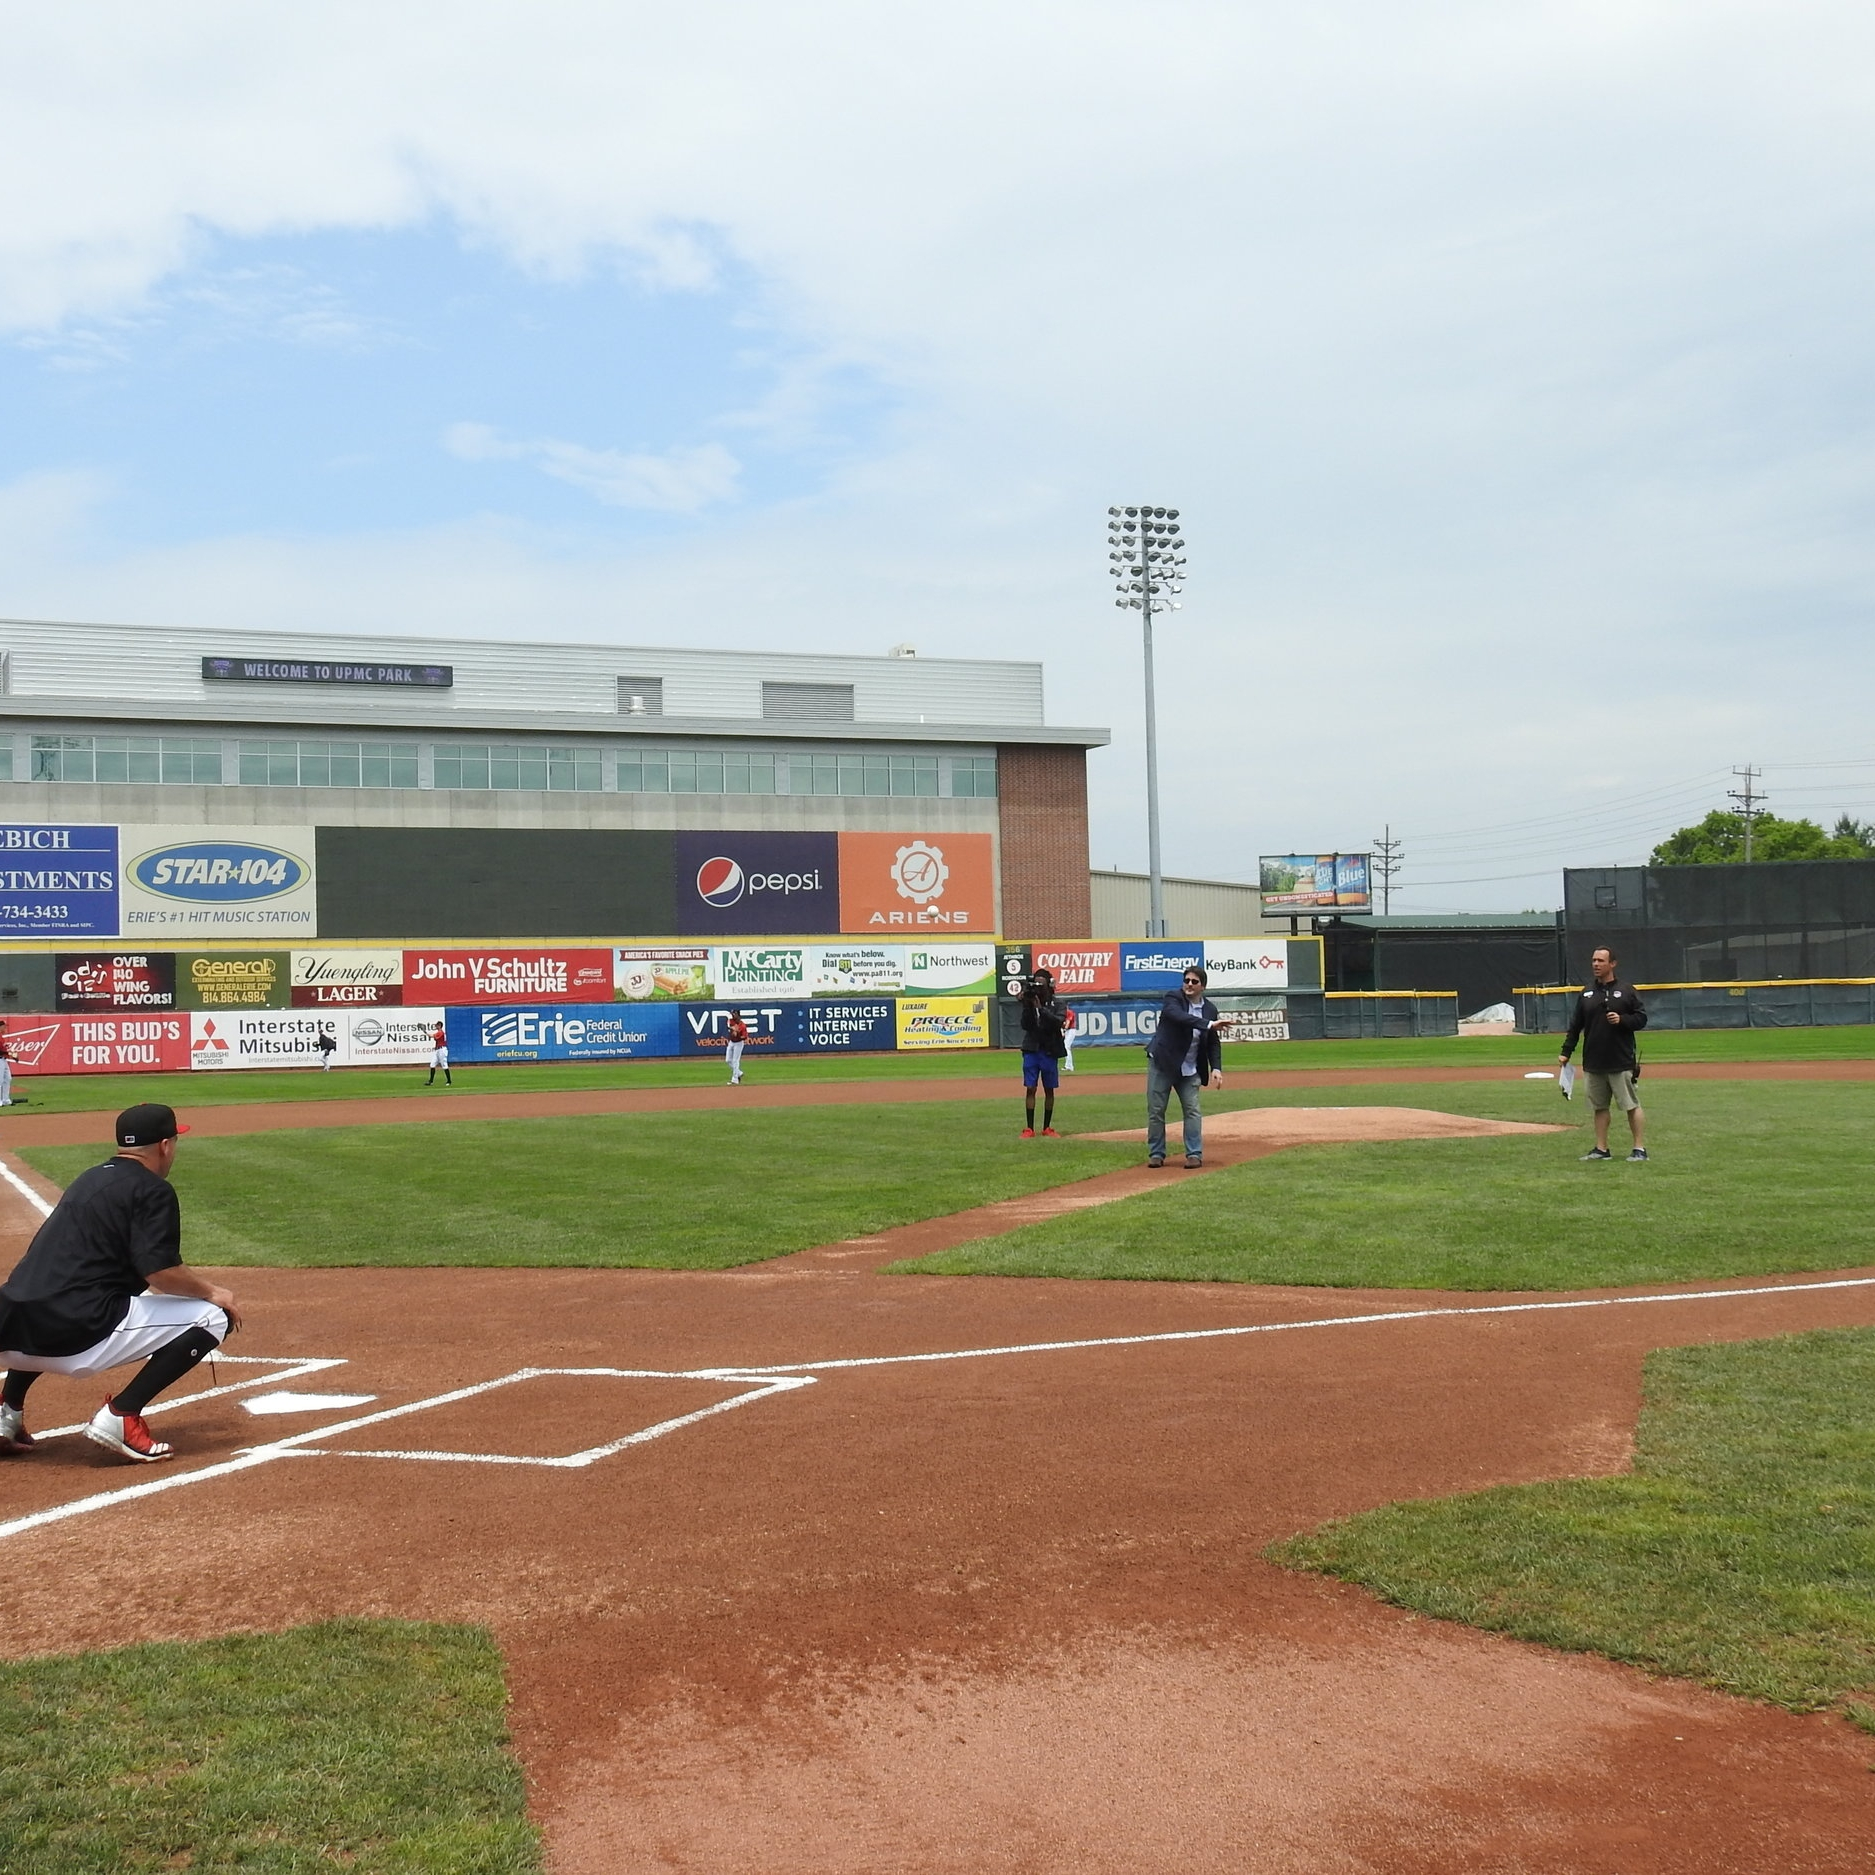 Play Ball! - From throwing out the first pitch to hanging out with C. Wolf, everyone enjoyed the day at UPMC Park.